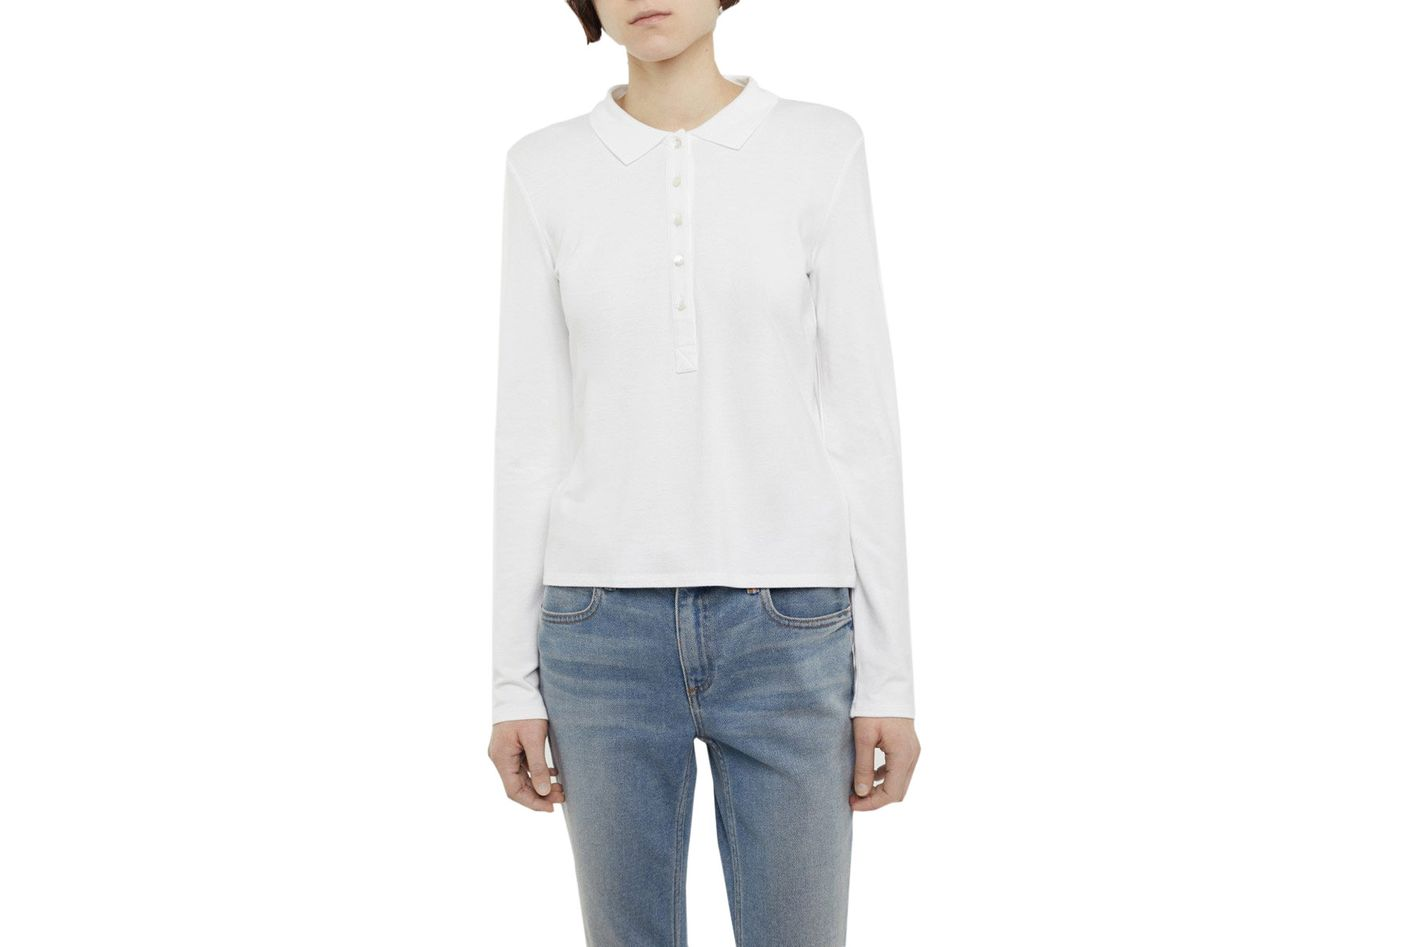 T by Alexander Wang Polo Tee